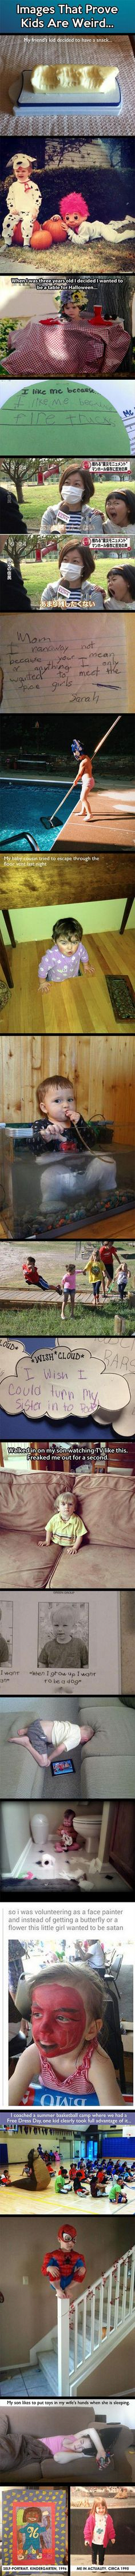 20 Funny Pictures That Show Why Geeky Kids Can Be Weird - TechEBlog